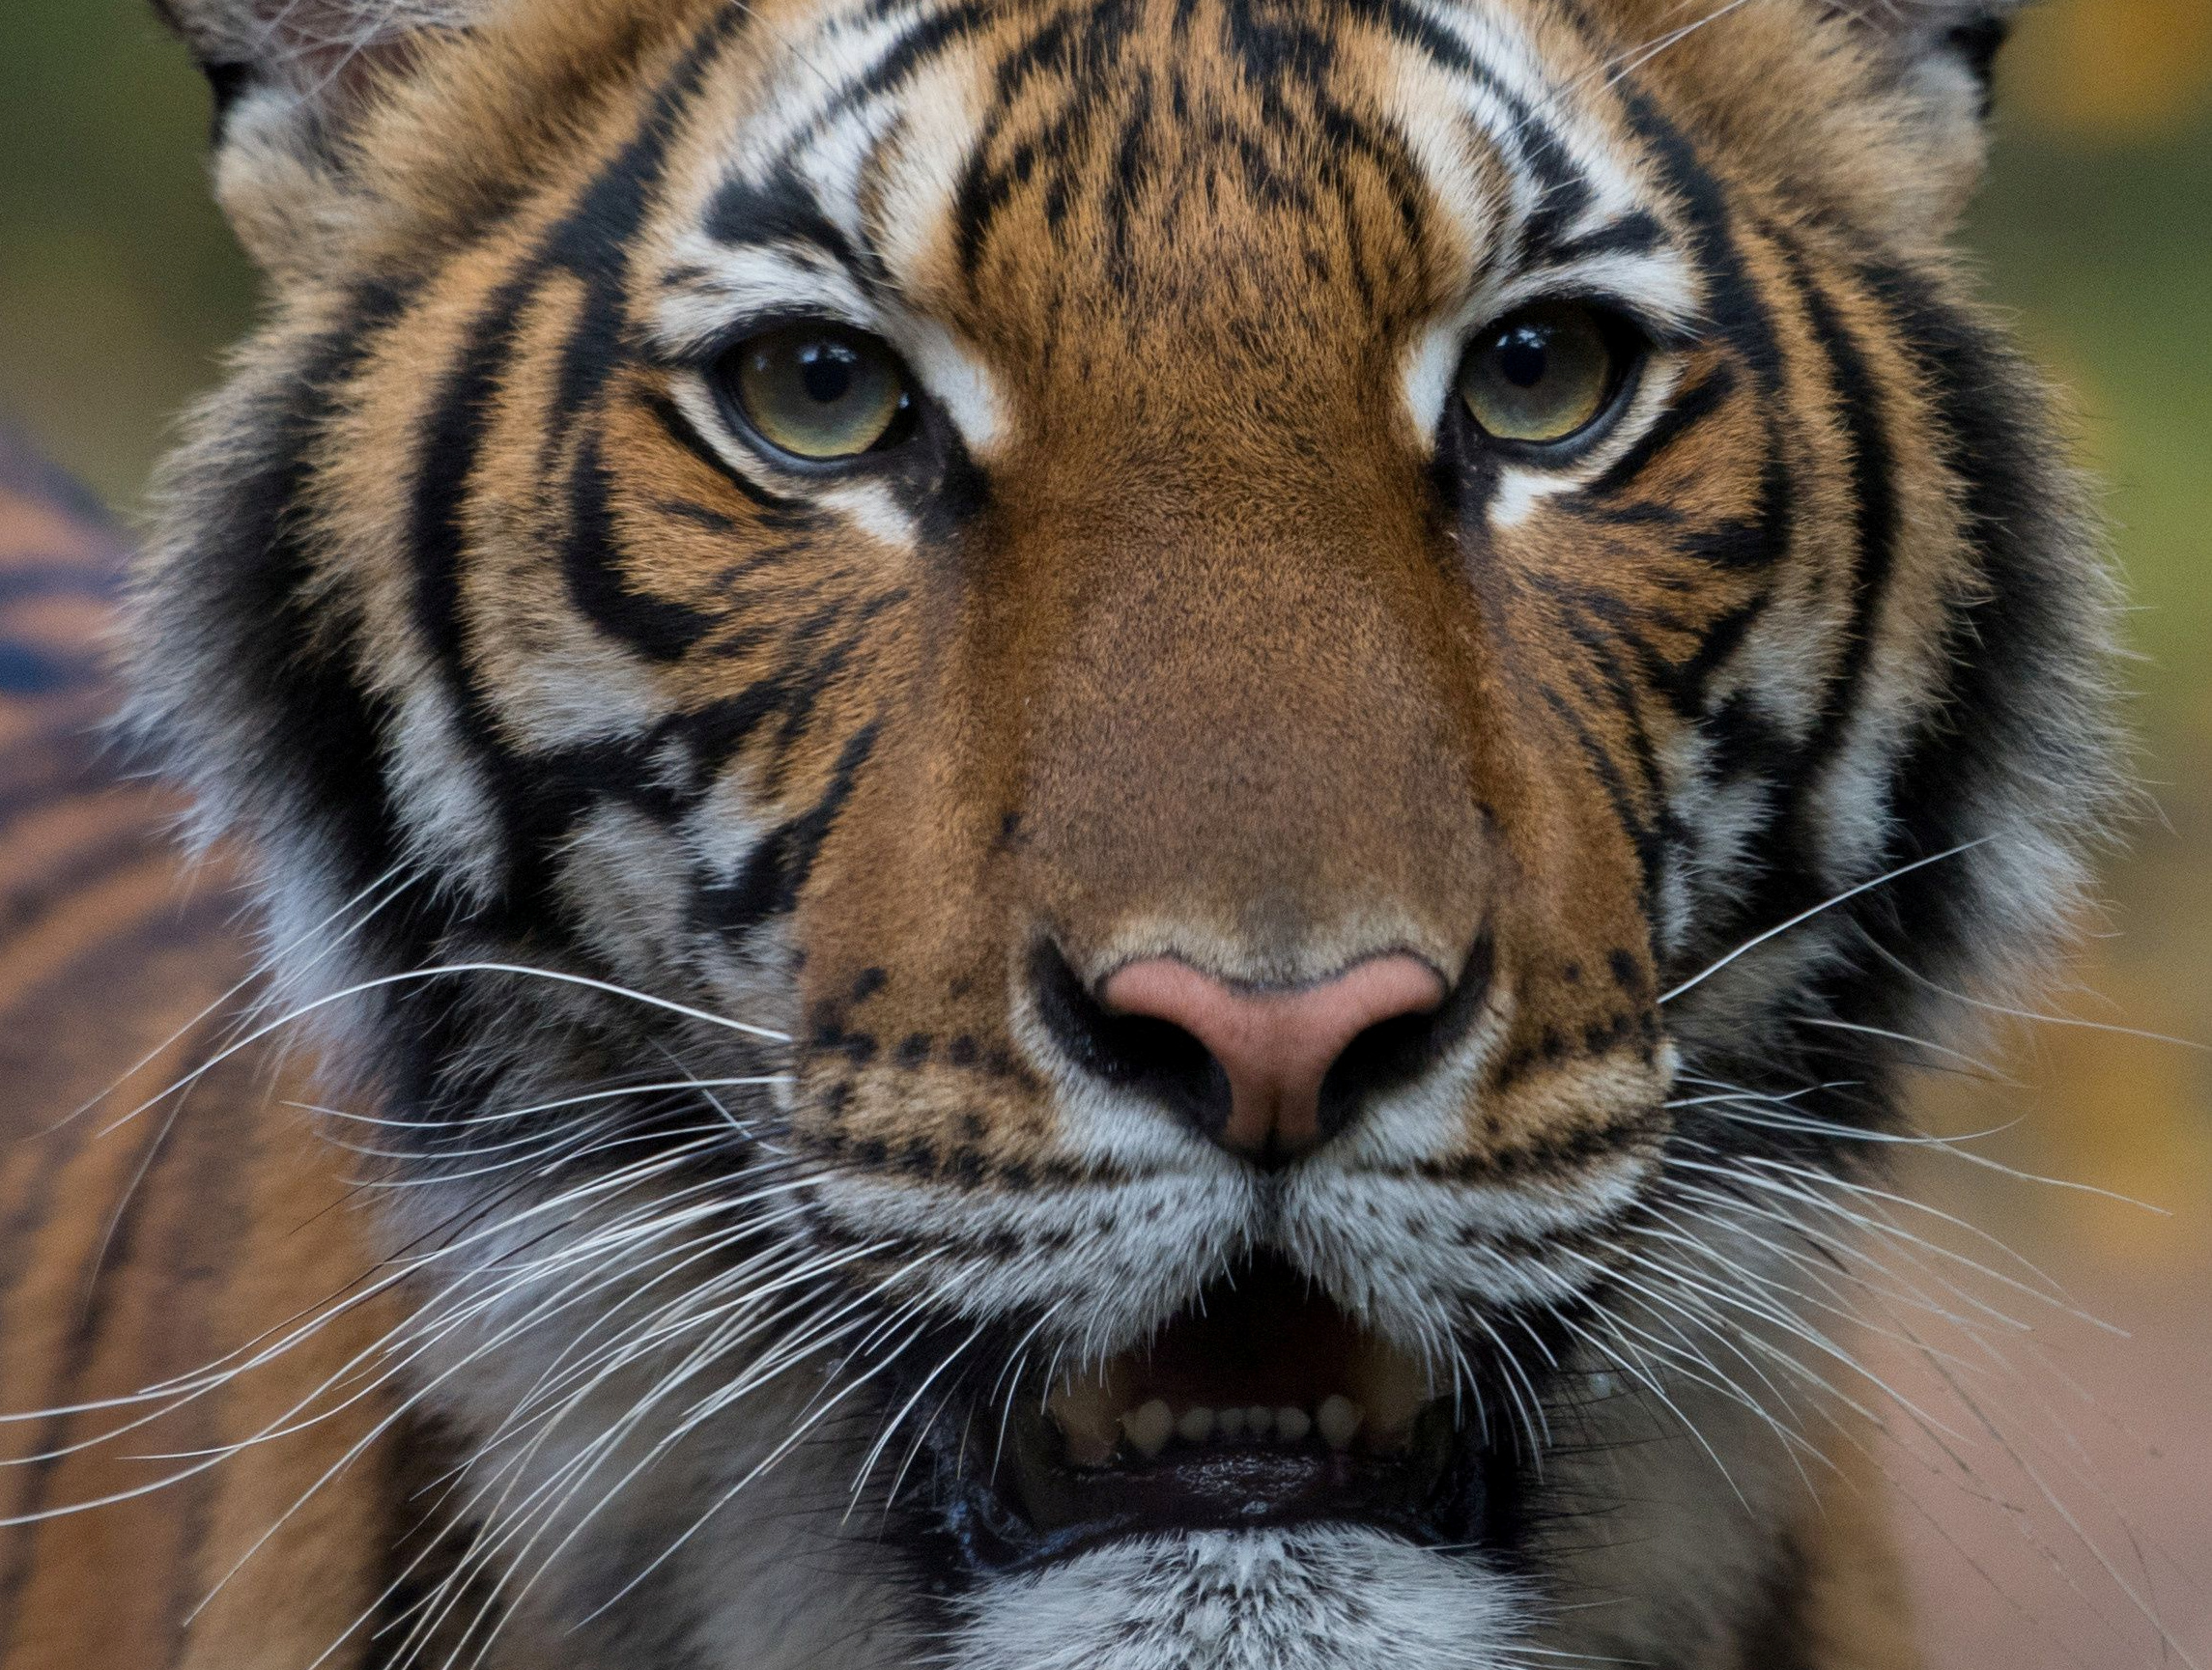 Nadia, a 4-year-old female Malayan tiger at the Bronx Zoo, that the zoo said on April 5, 2020 has tested positive for coronavirus disease (COVID-19) is seen in an undated handout photo provided by the Bronx zoo in New York. Photo: WCS/Handout via Reuters